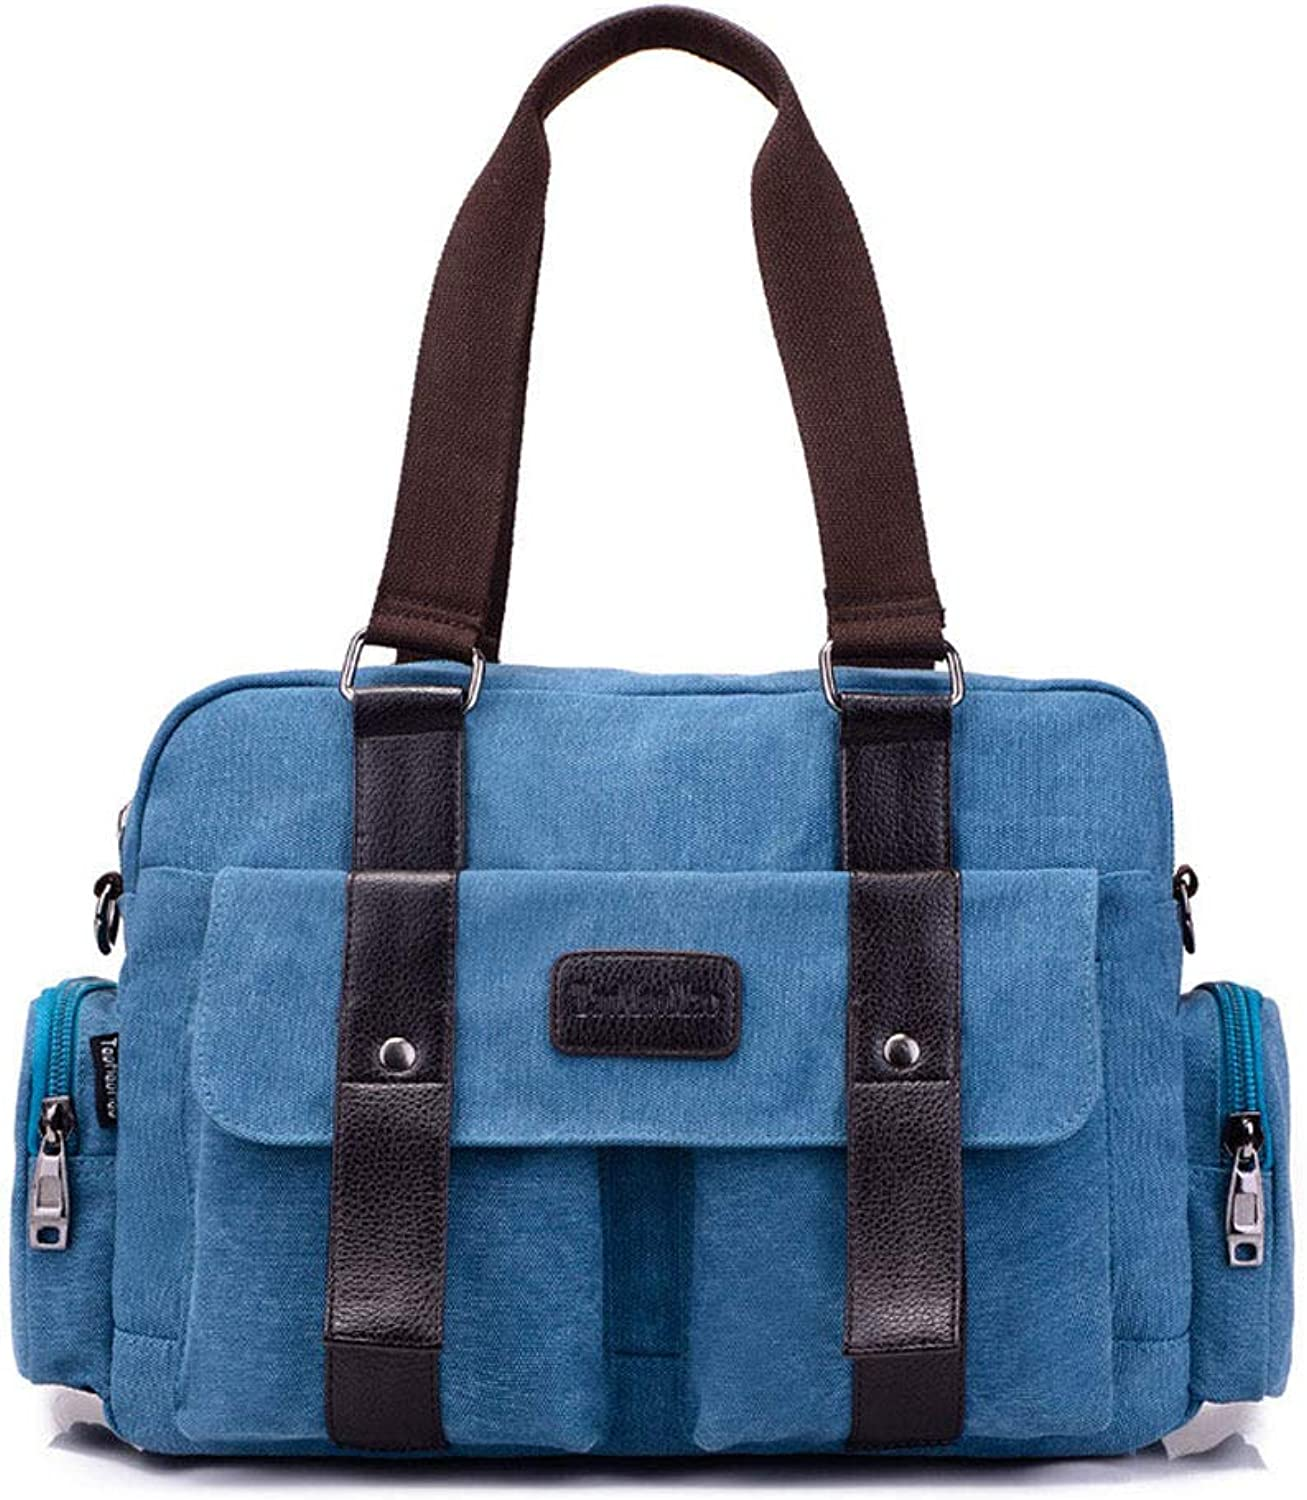 Large Capacity Canvas Holdall Weekend Travel Duffel Bag Outdoor Travel Bag Backpack Messenger Shoulder Bags,bluee